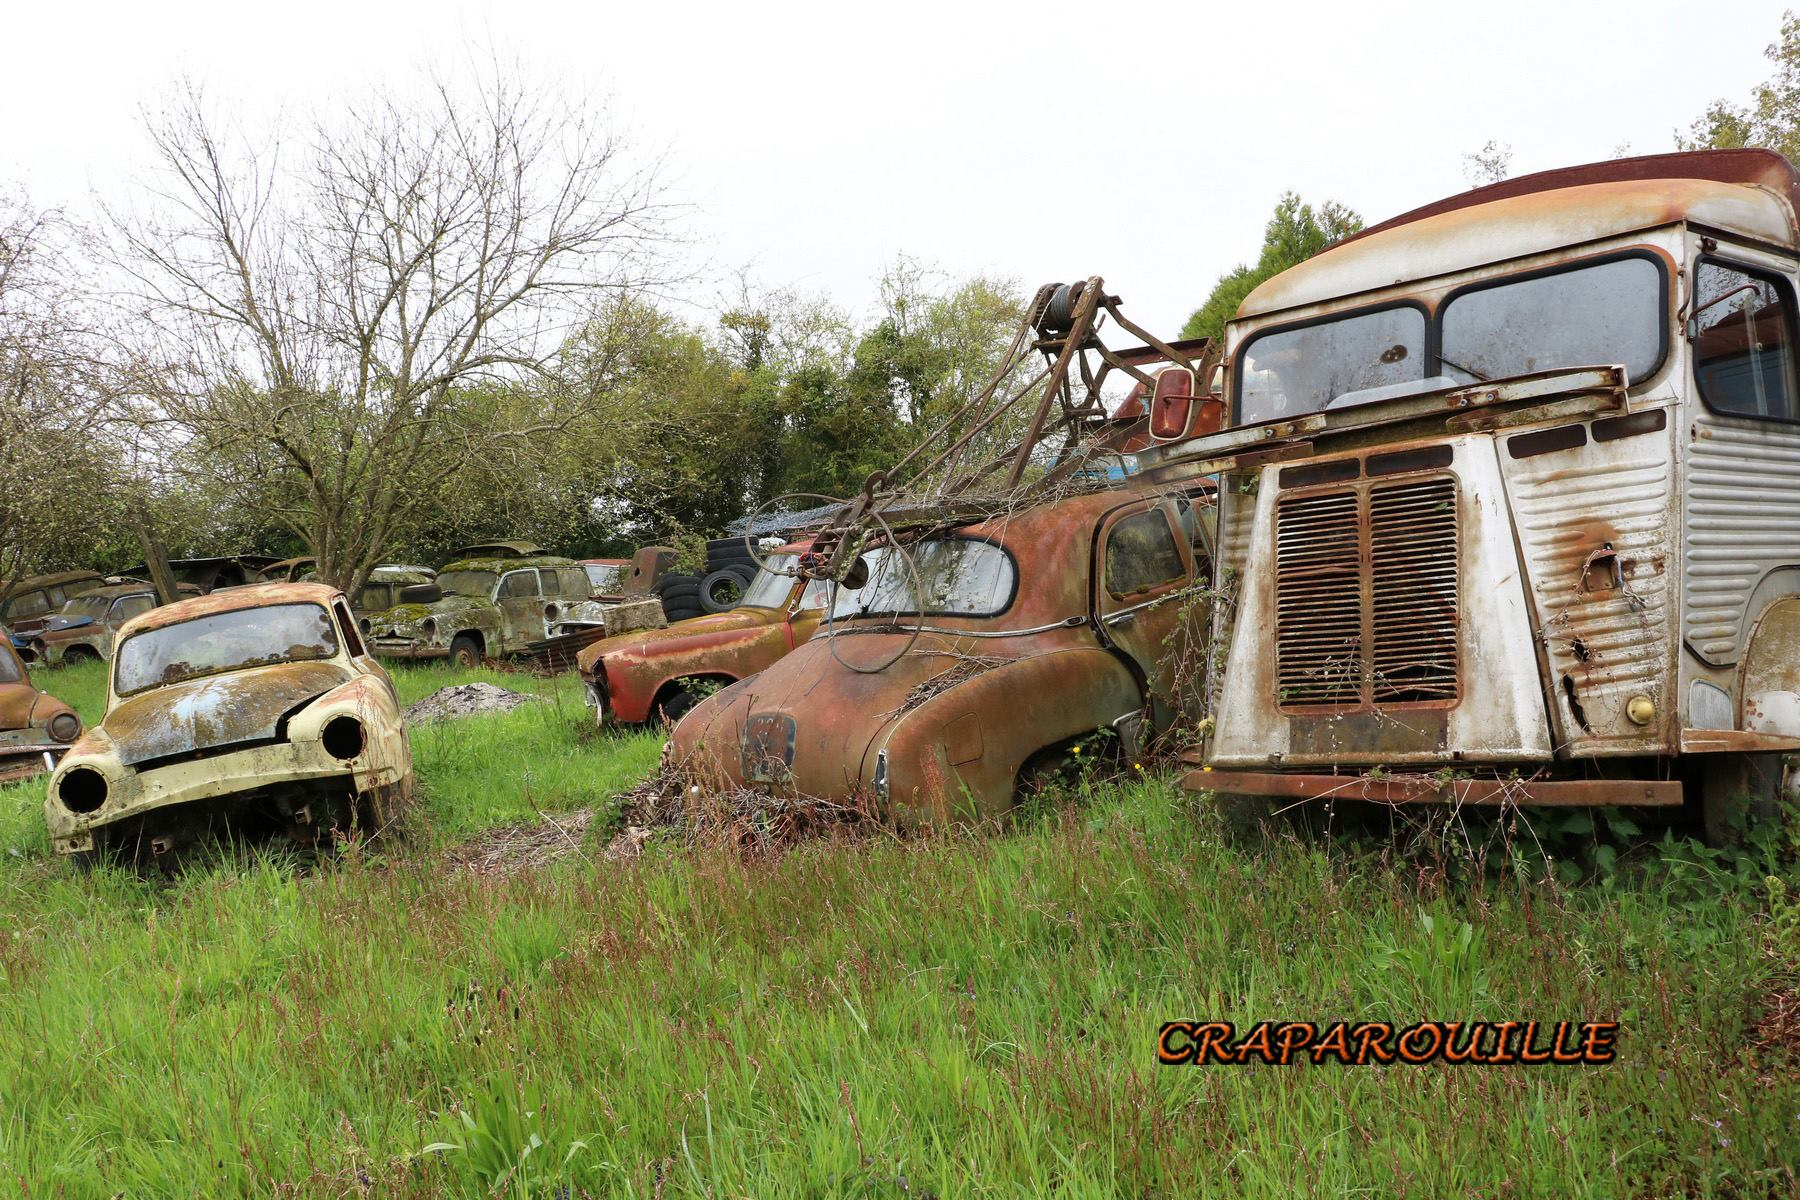 Photography-Diamonds-in-Rust-Craparouille-105